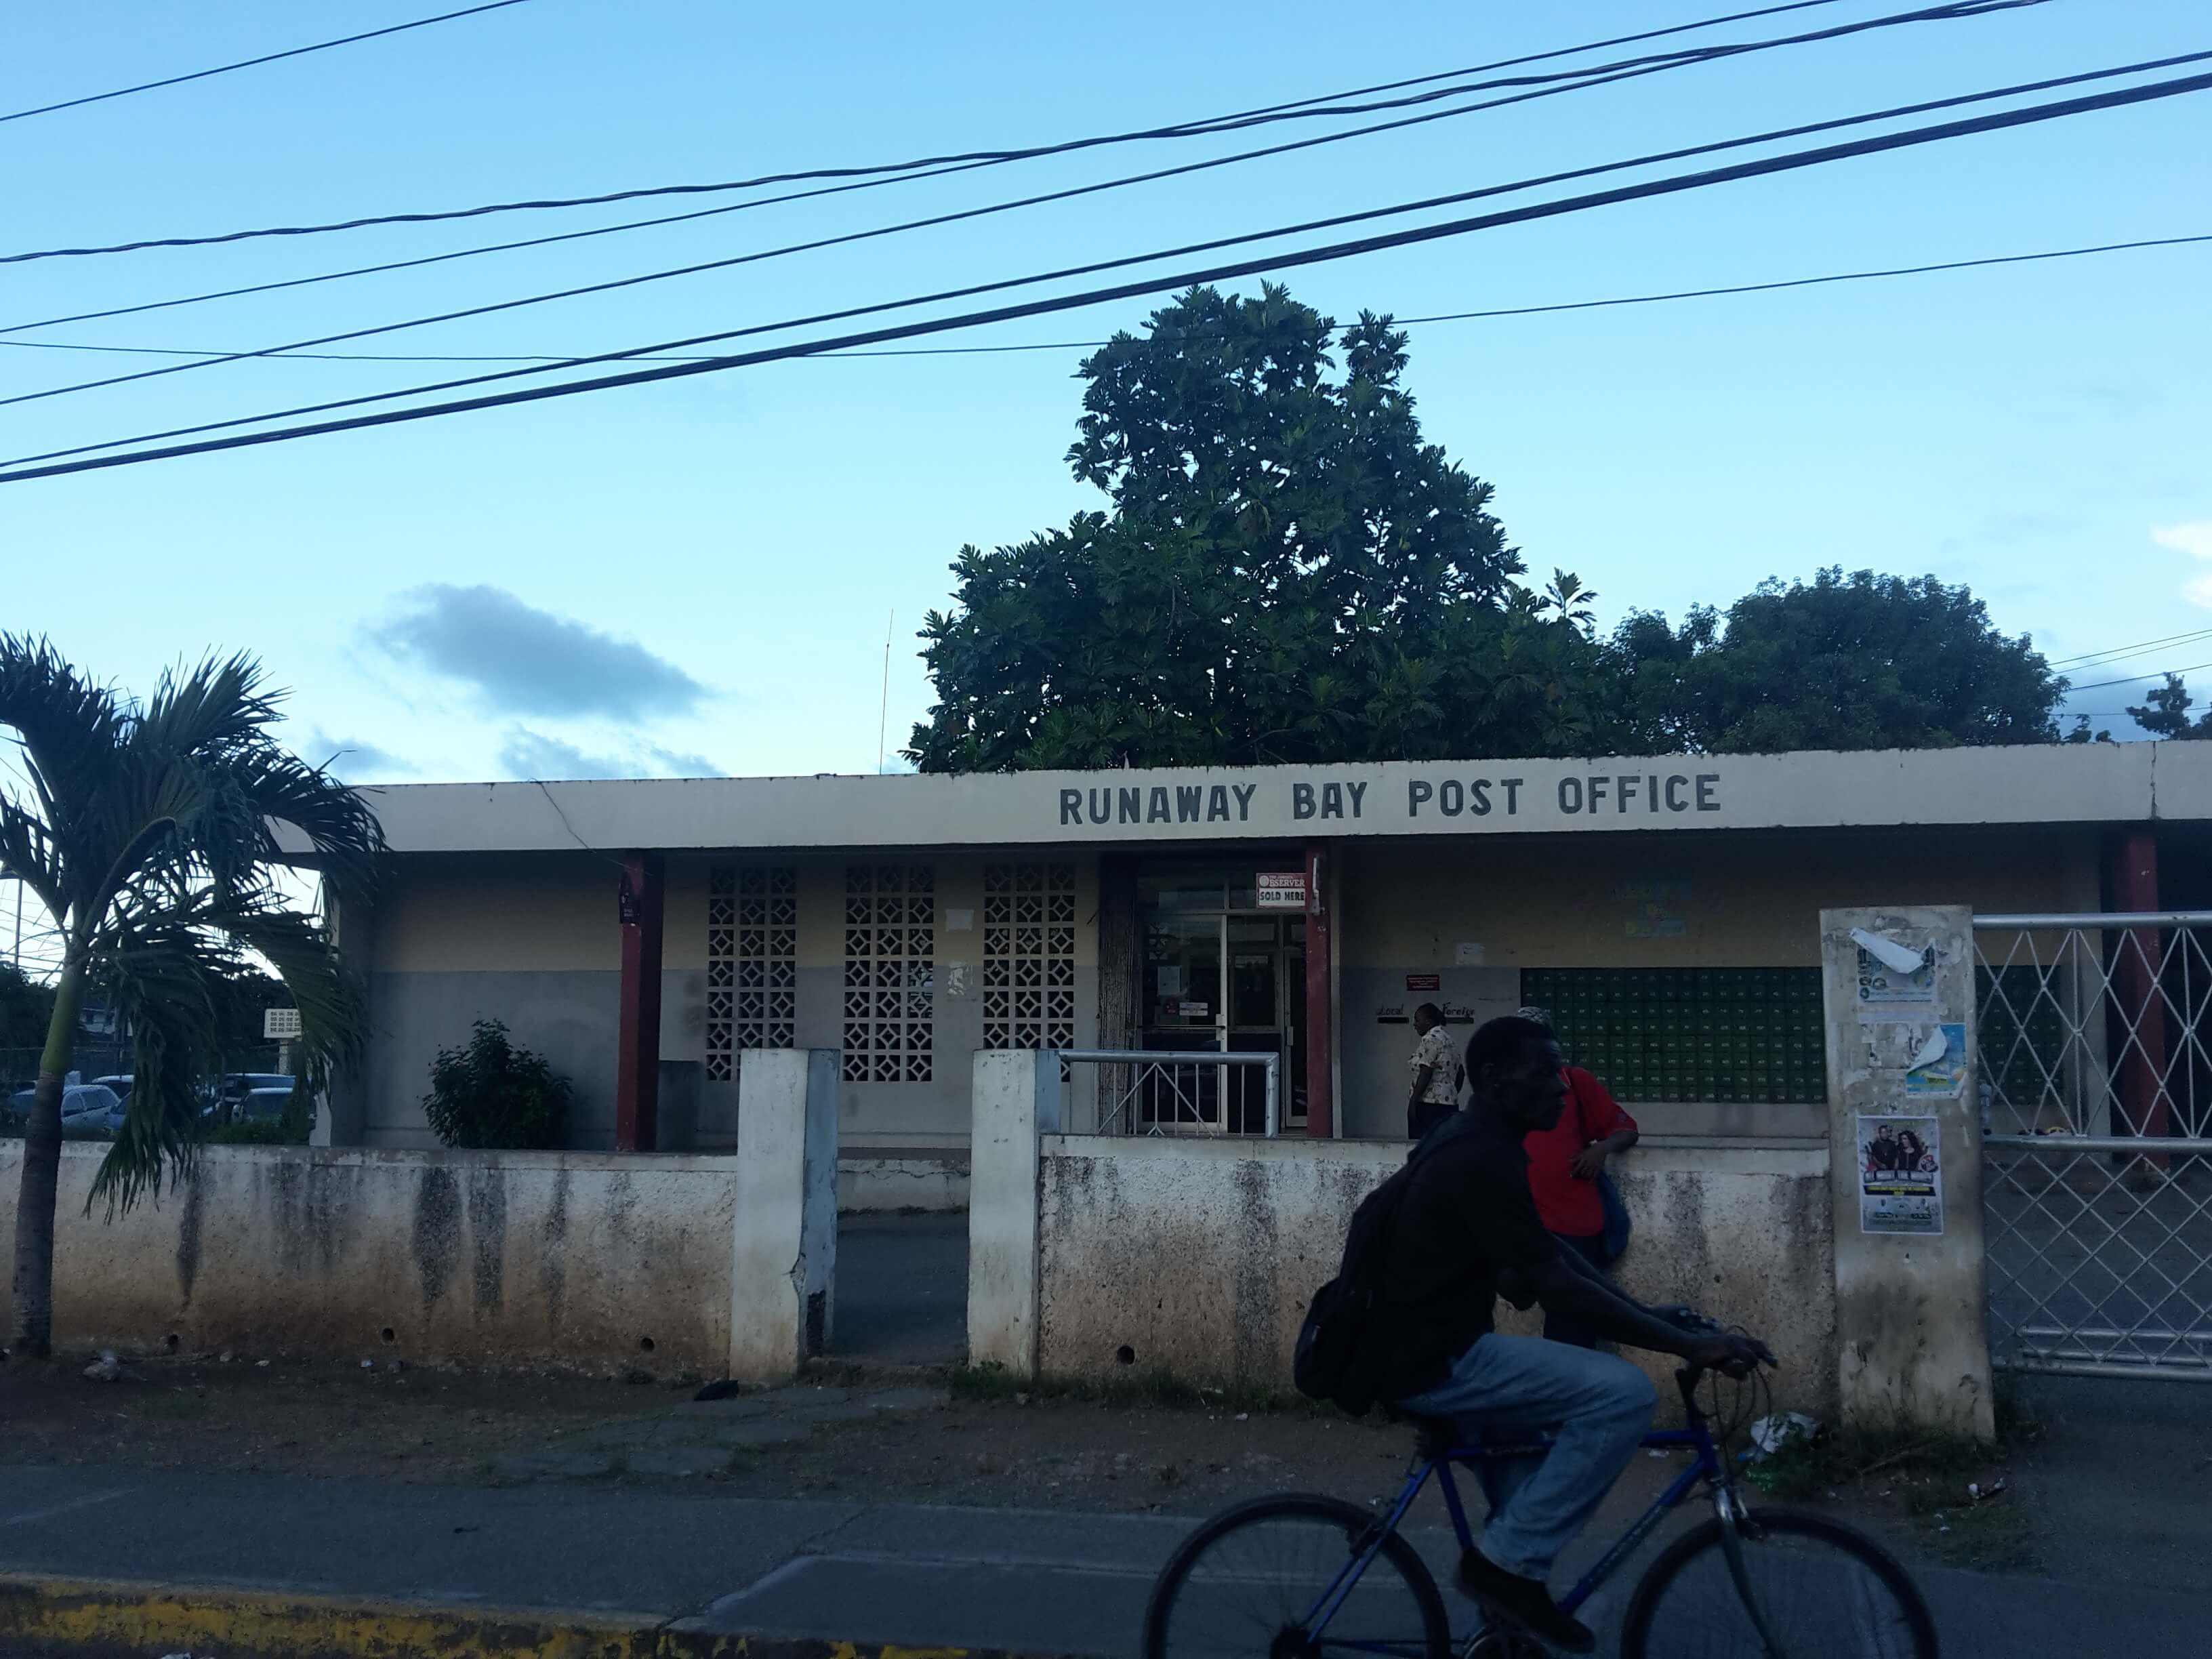 runaway_bay_post_office